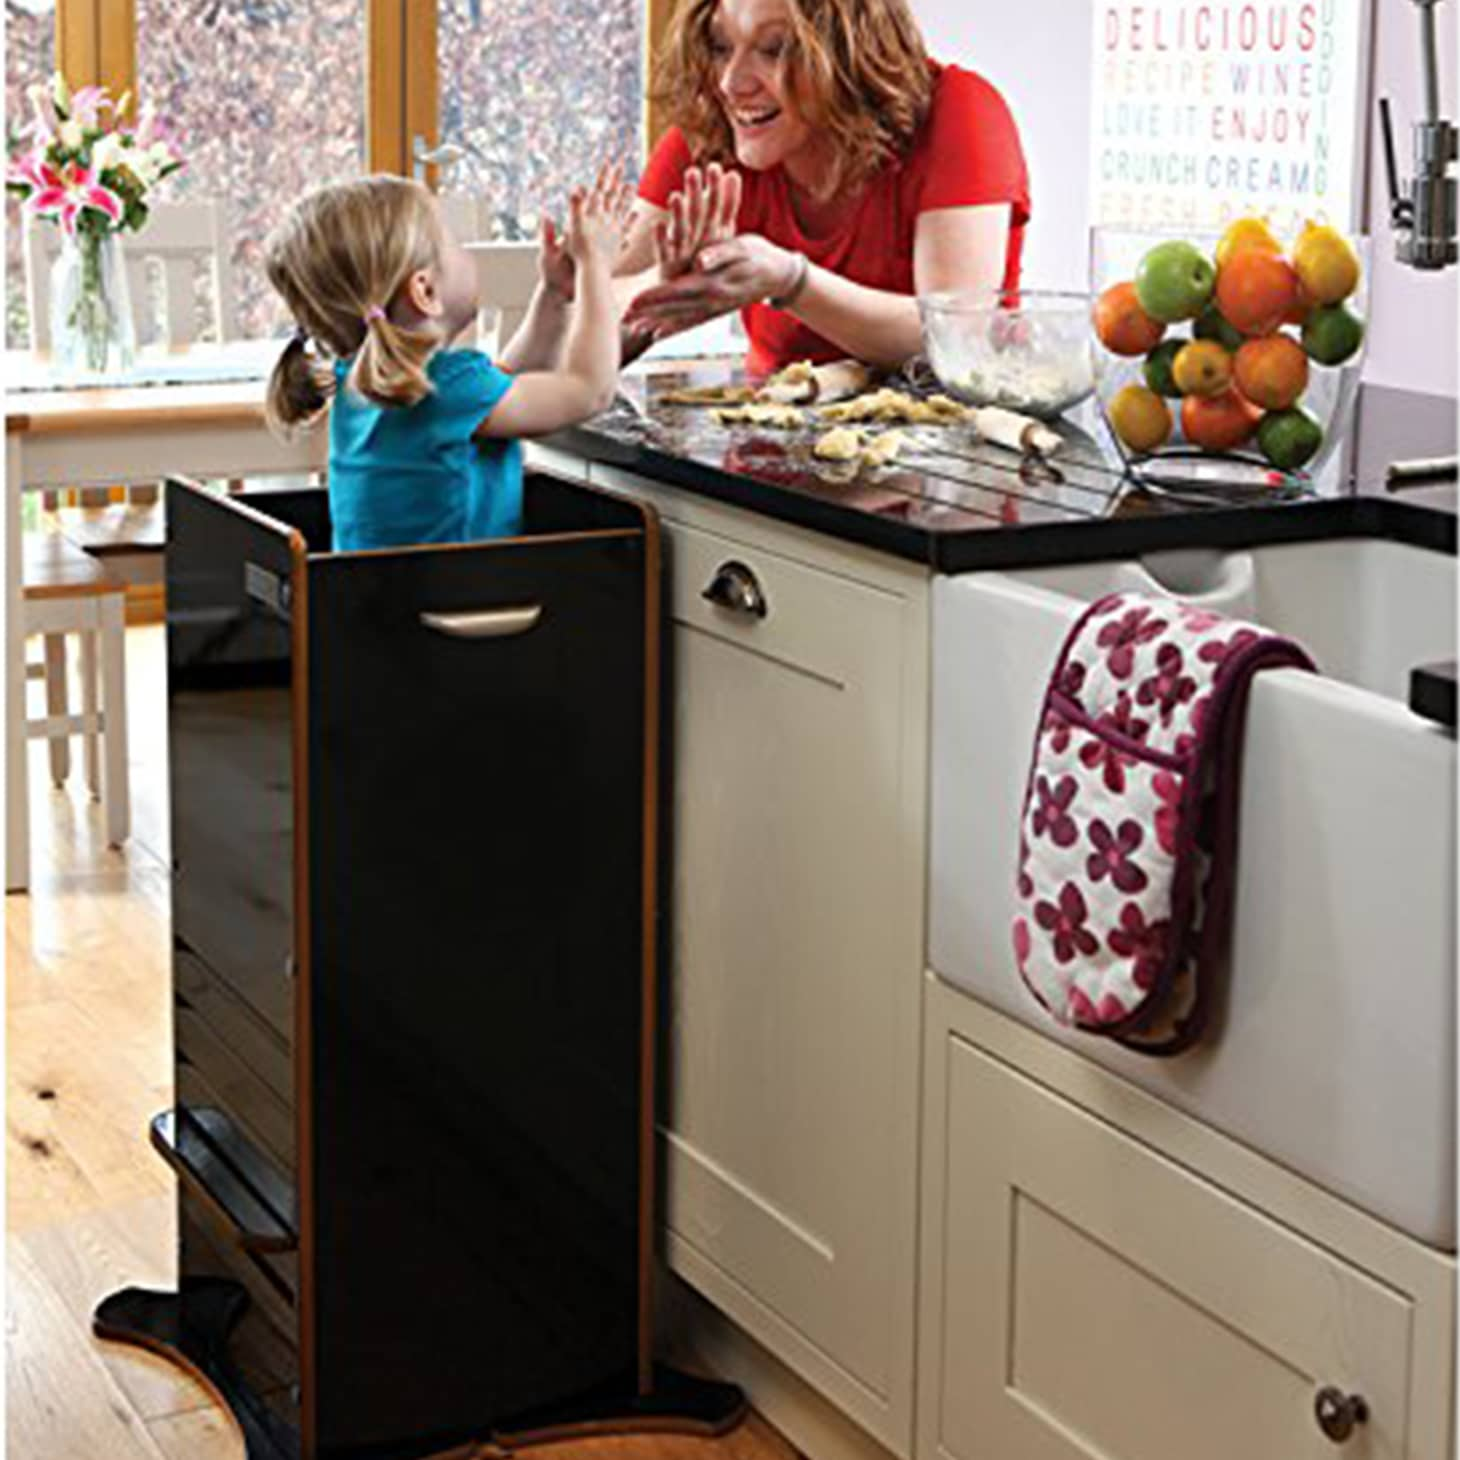 Awesome Platforms And Step Stools For Kids In The Kitchen Kitchn Gmtry Best Dining Table And Chair Ideas Images Gmtryco